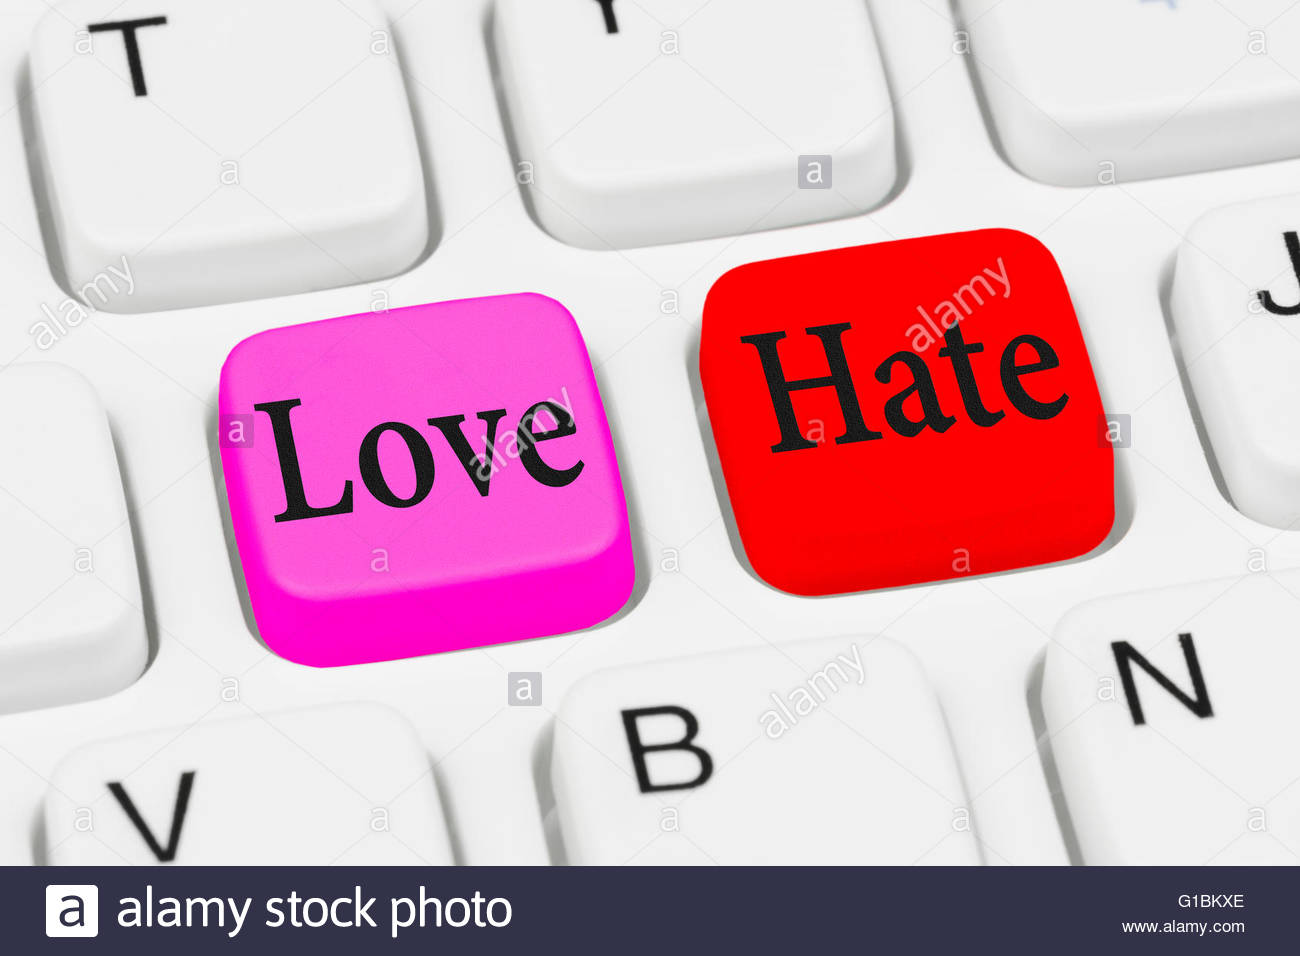 Love or Hate keys on a computer keyboard. - Stock Image